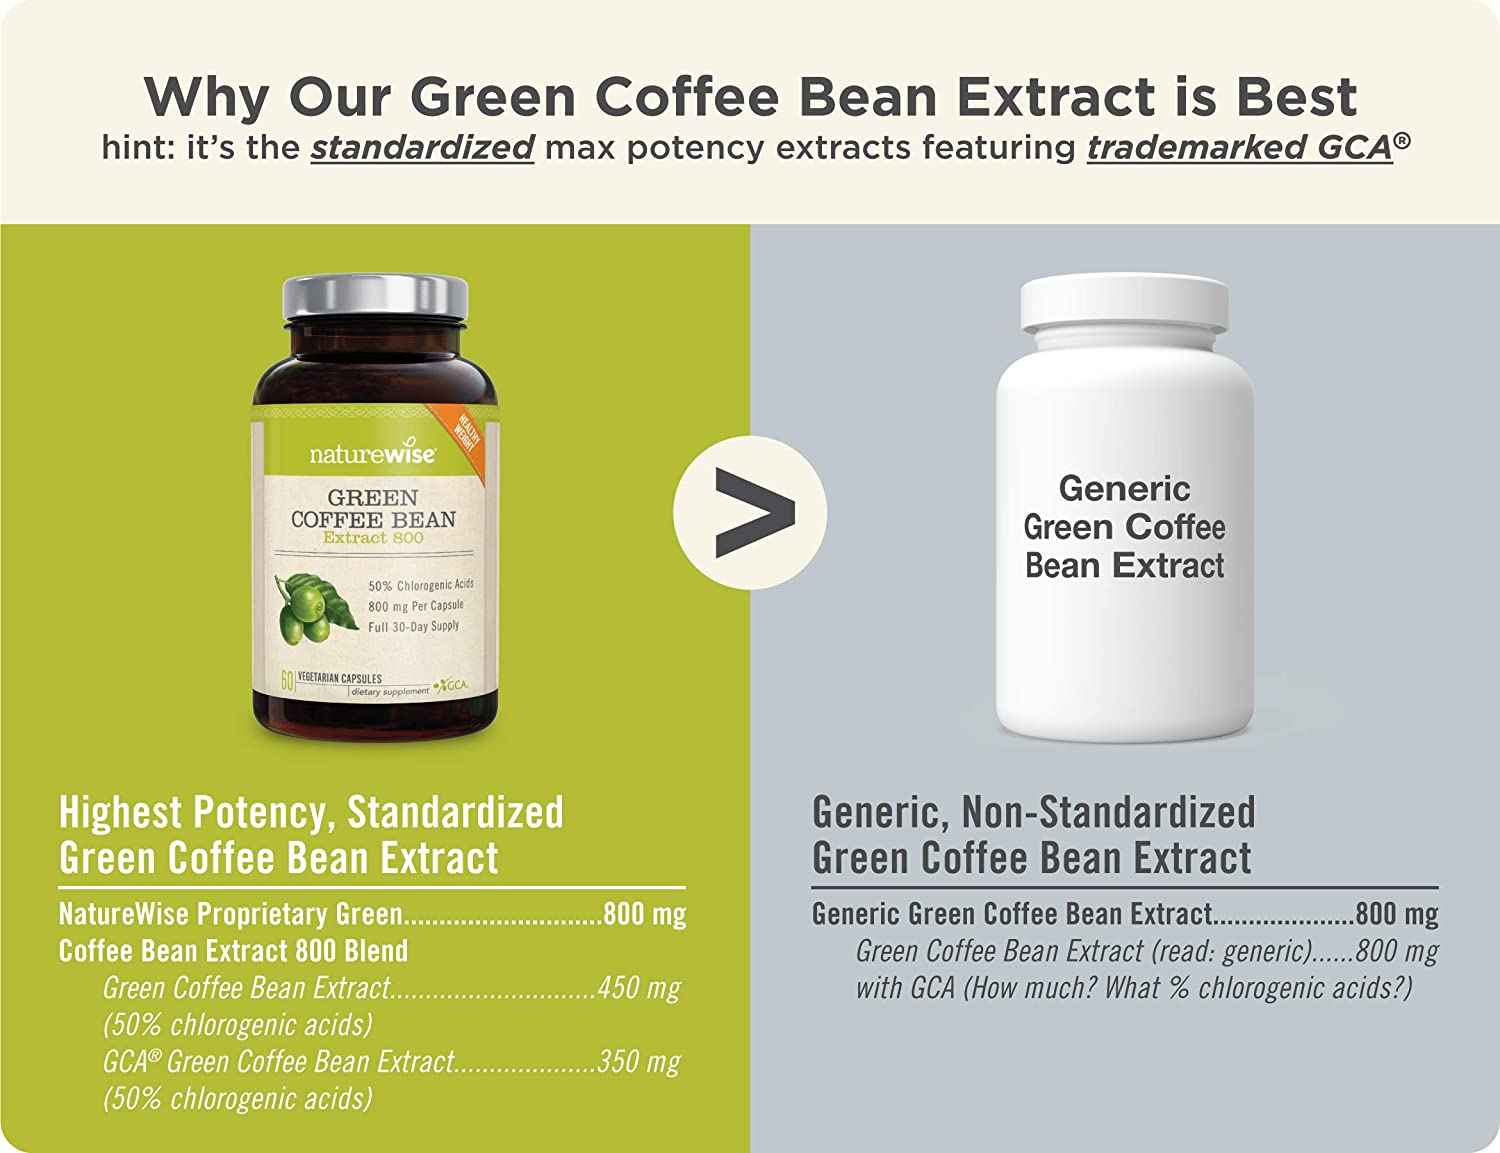 Amazon Com Naturewise Green Coffee Bean 800mg Max Potency Extract 50 Chlorogenic Acids Raw Green Coffee Antioxidant Supplement Metabolism Booster For Weight